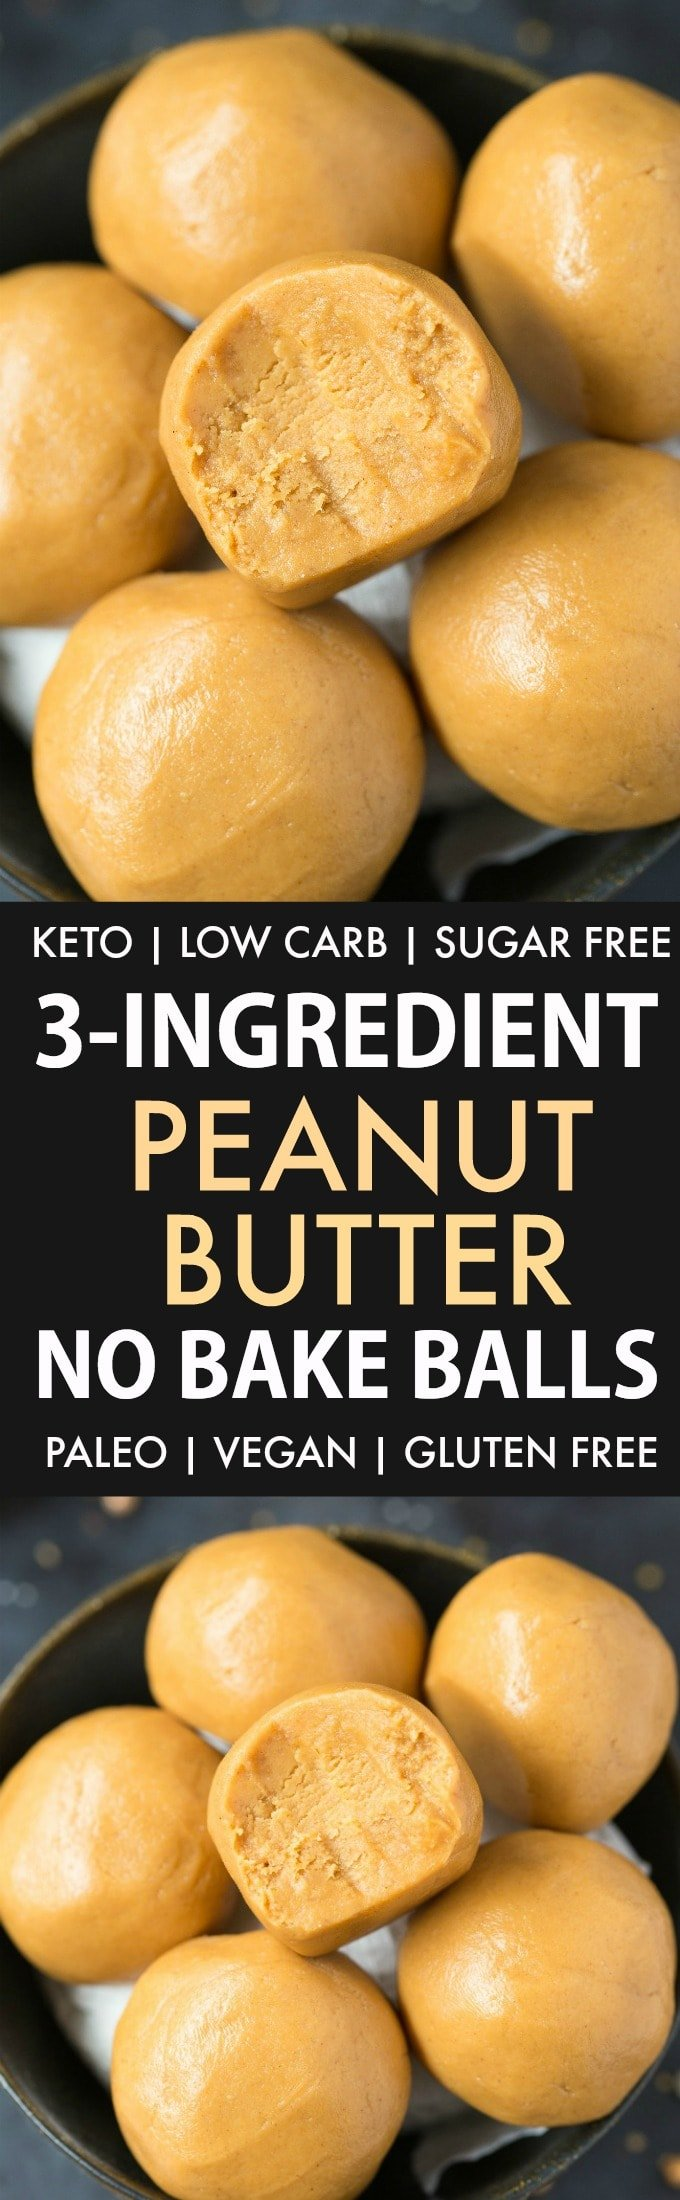 Easy Peanut Butter Balls No Bake Without Chocolate